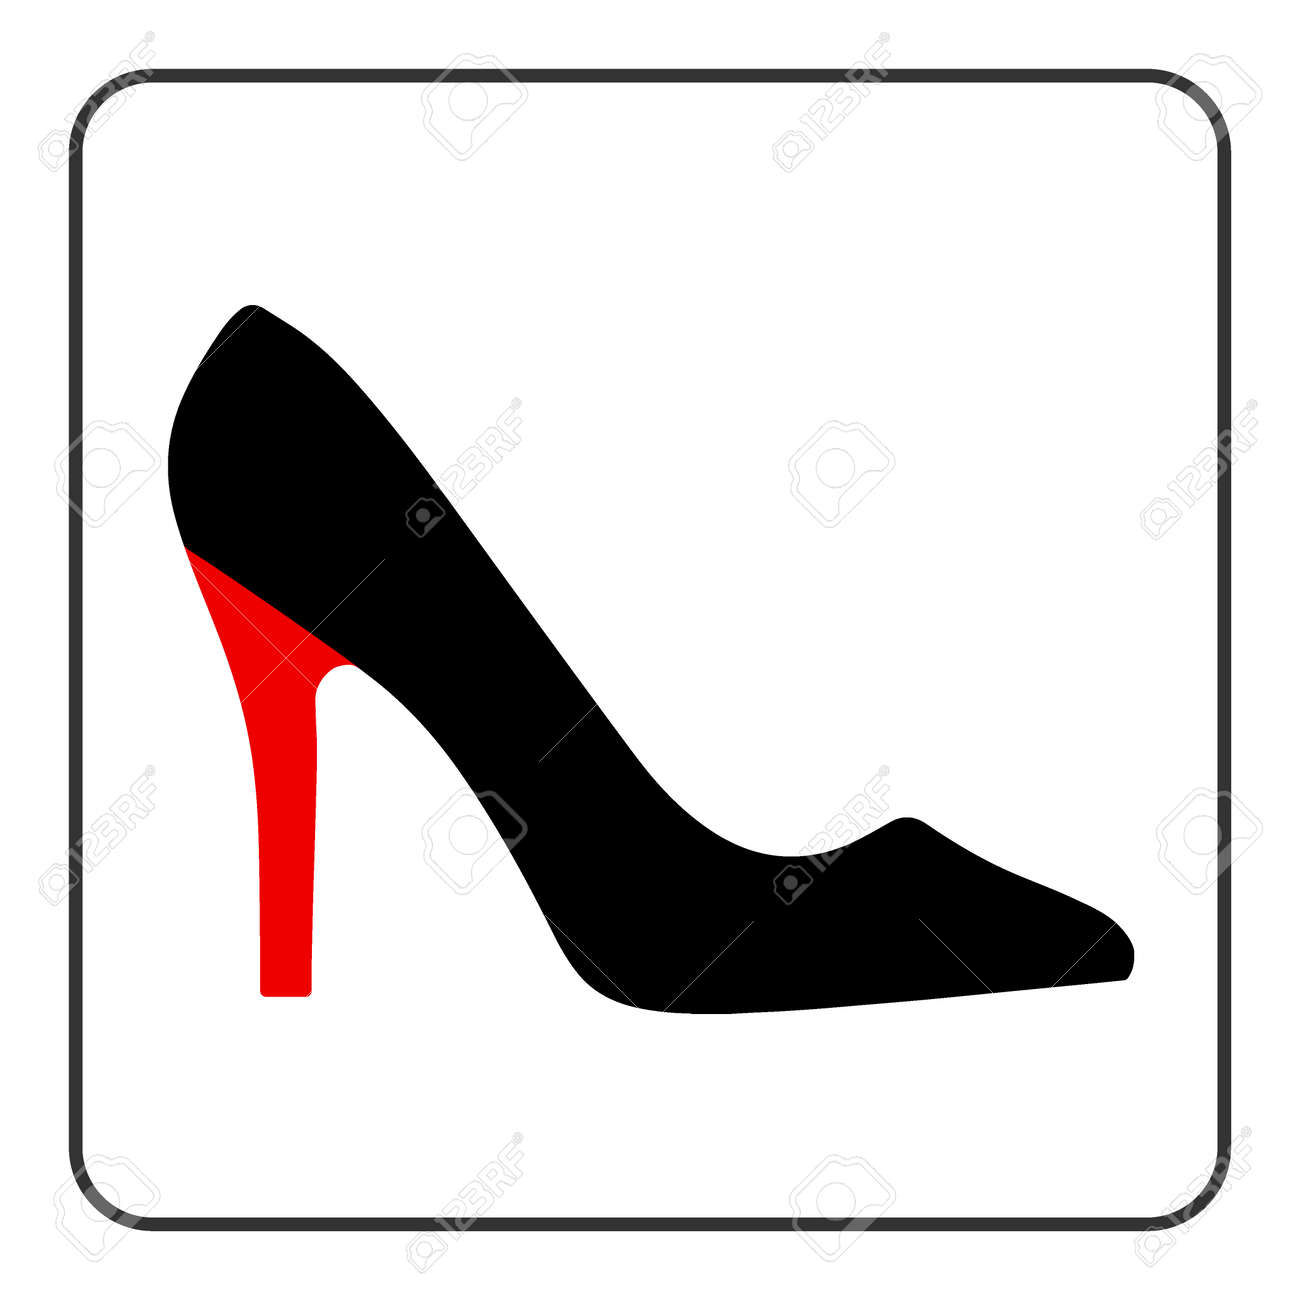 9858f06fc4ff66 52060063-high-heel-shoes -icon-elegant-black-and-red-silhouette-information-sign-women-shoe -symbol-fashion-lab.jpg